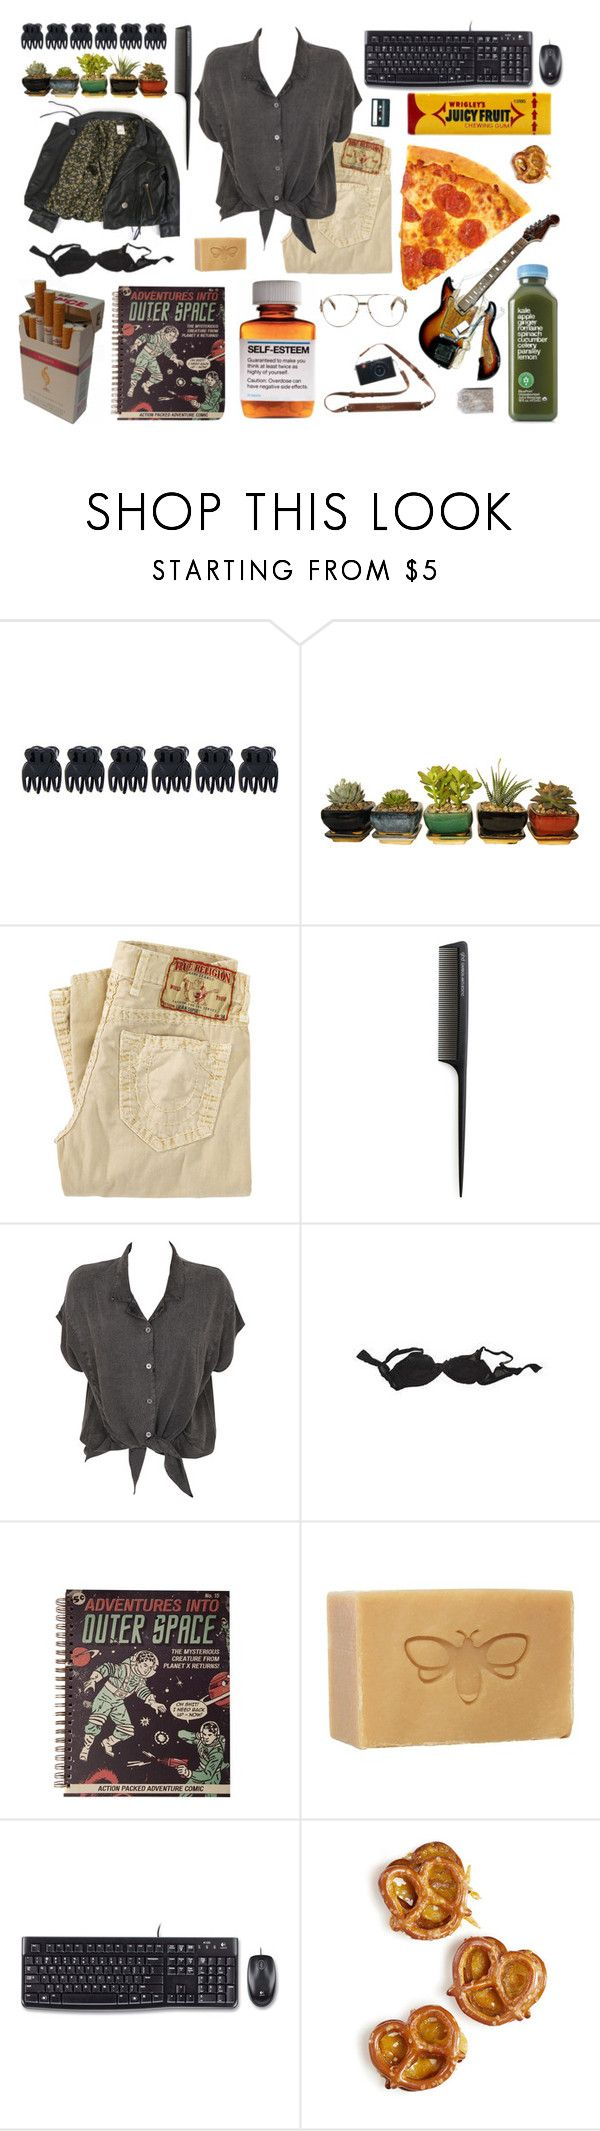 """OOTD #27"" by cara-is-a-freak ❤ liked on Polyvore featuring Accessorize, True Religion, GHD, Evil Twin, Agent Provocateur, Logitech, TDK, Børn and Fendi"